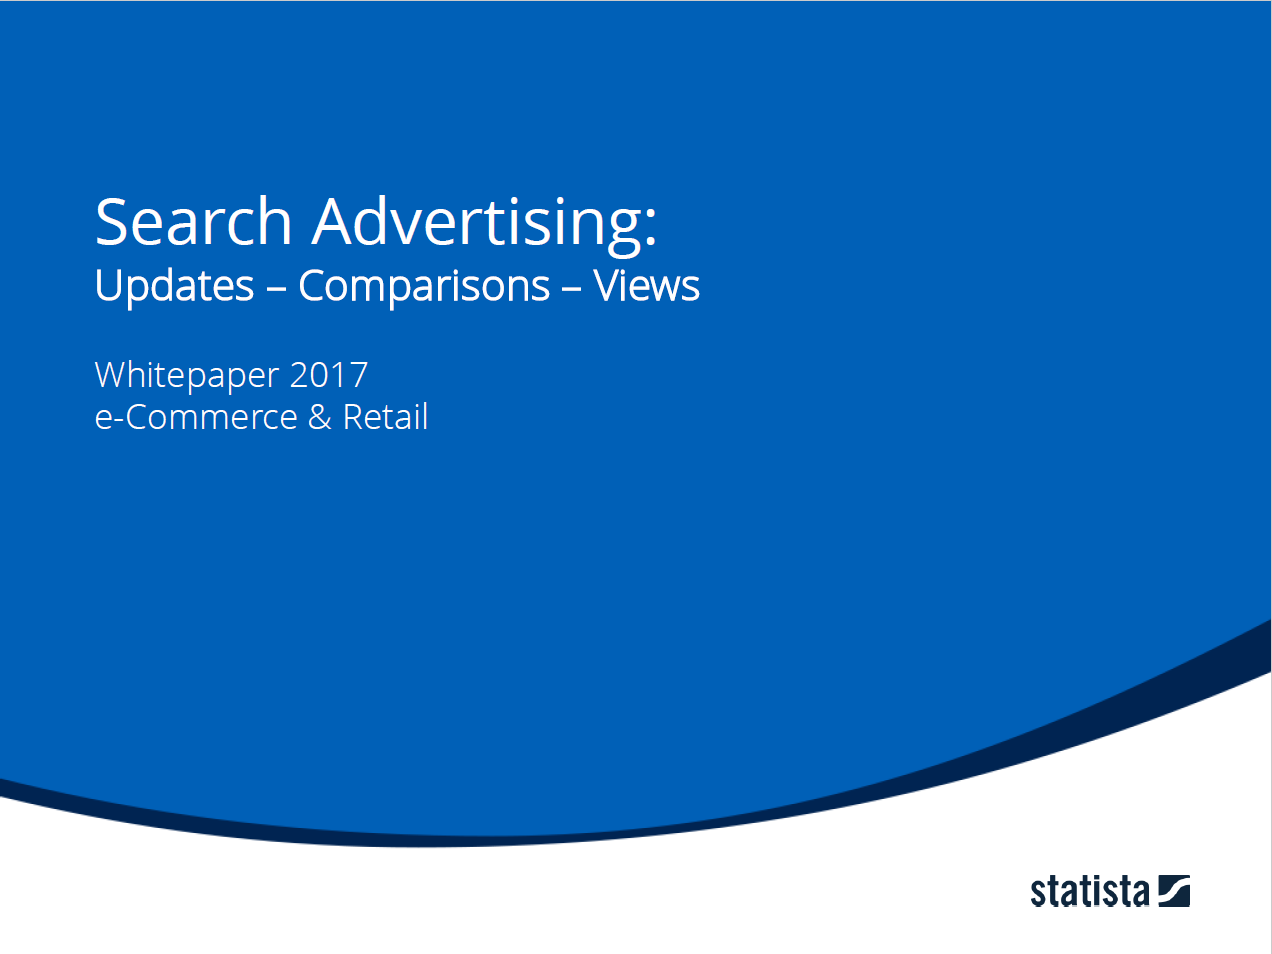 Search Advertising: Updates, Comparisons & Views